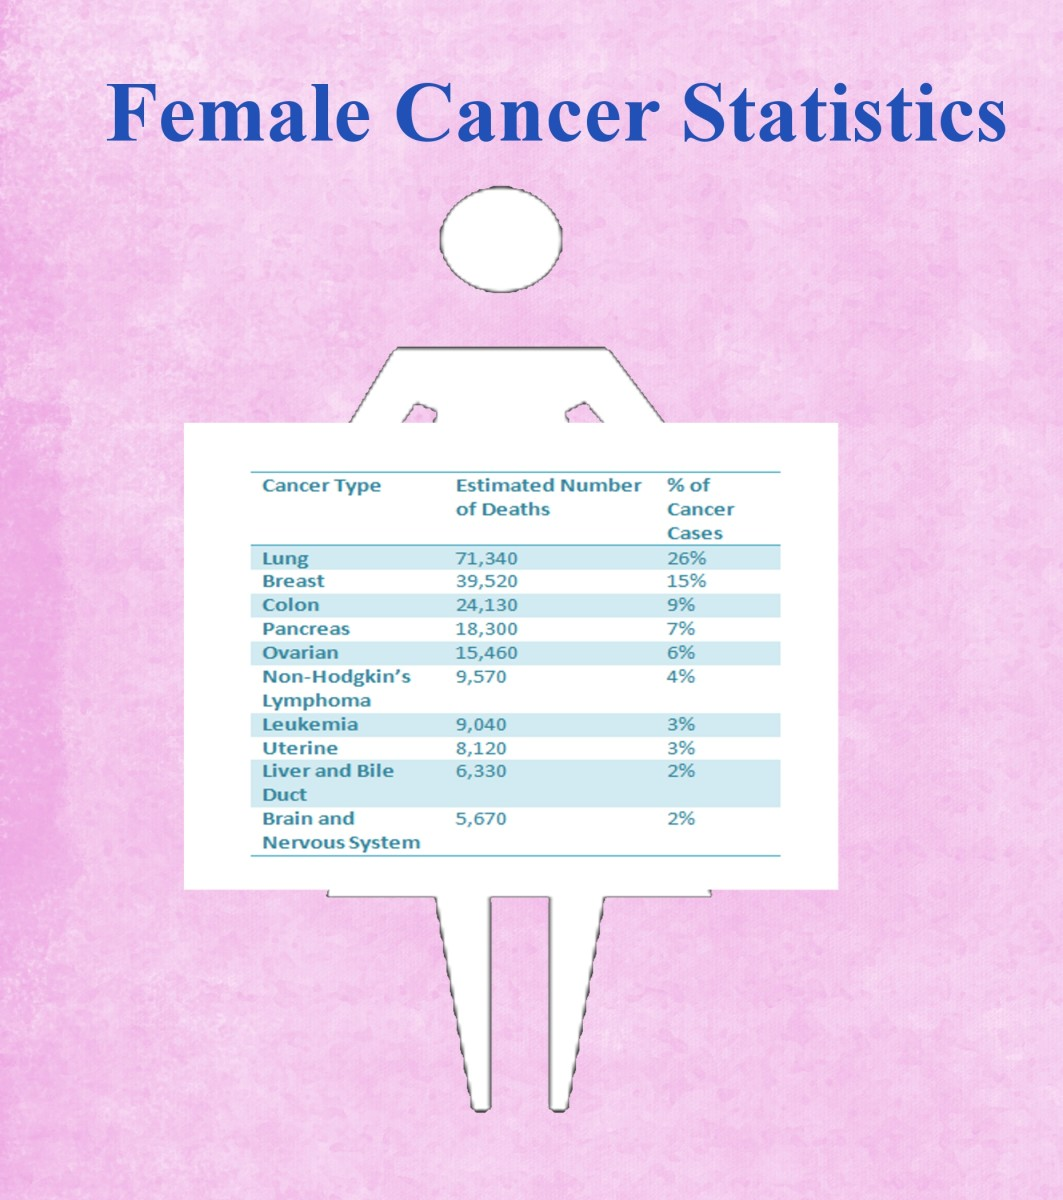 Cancer statistics for women living in the United States.